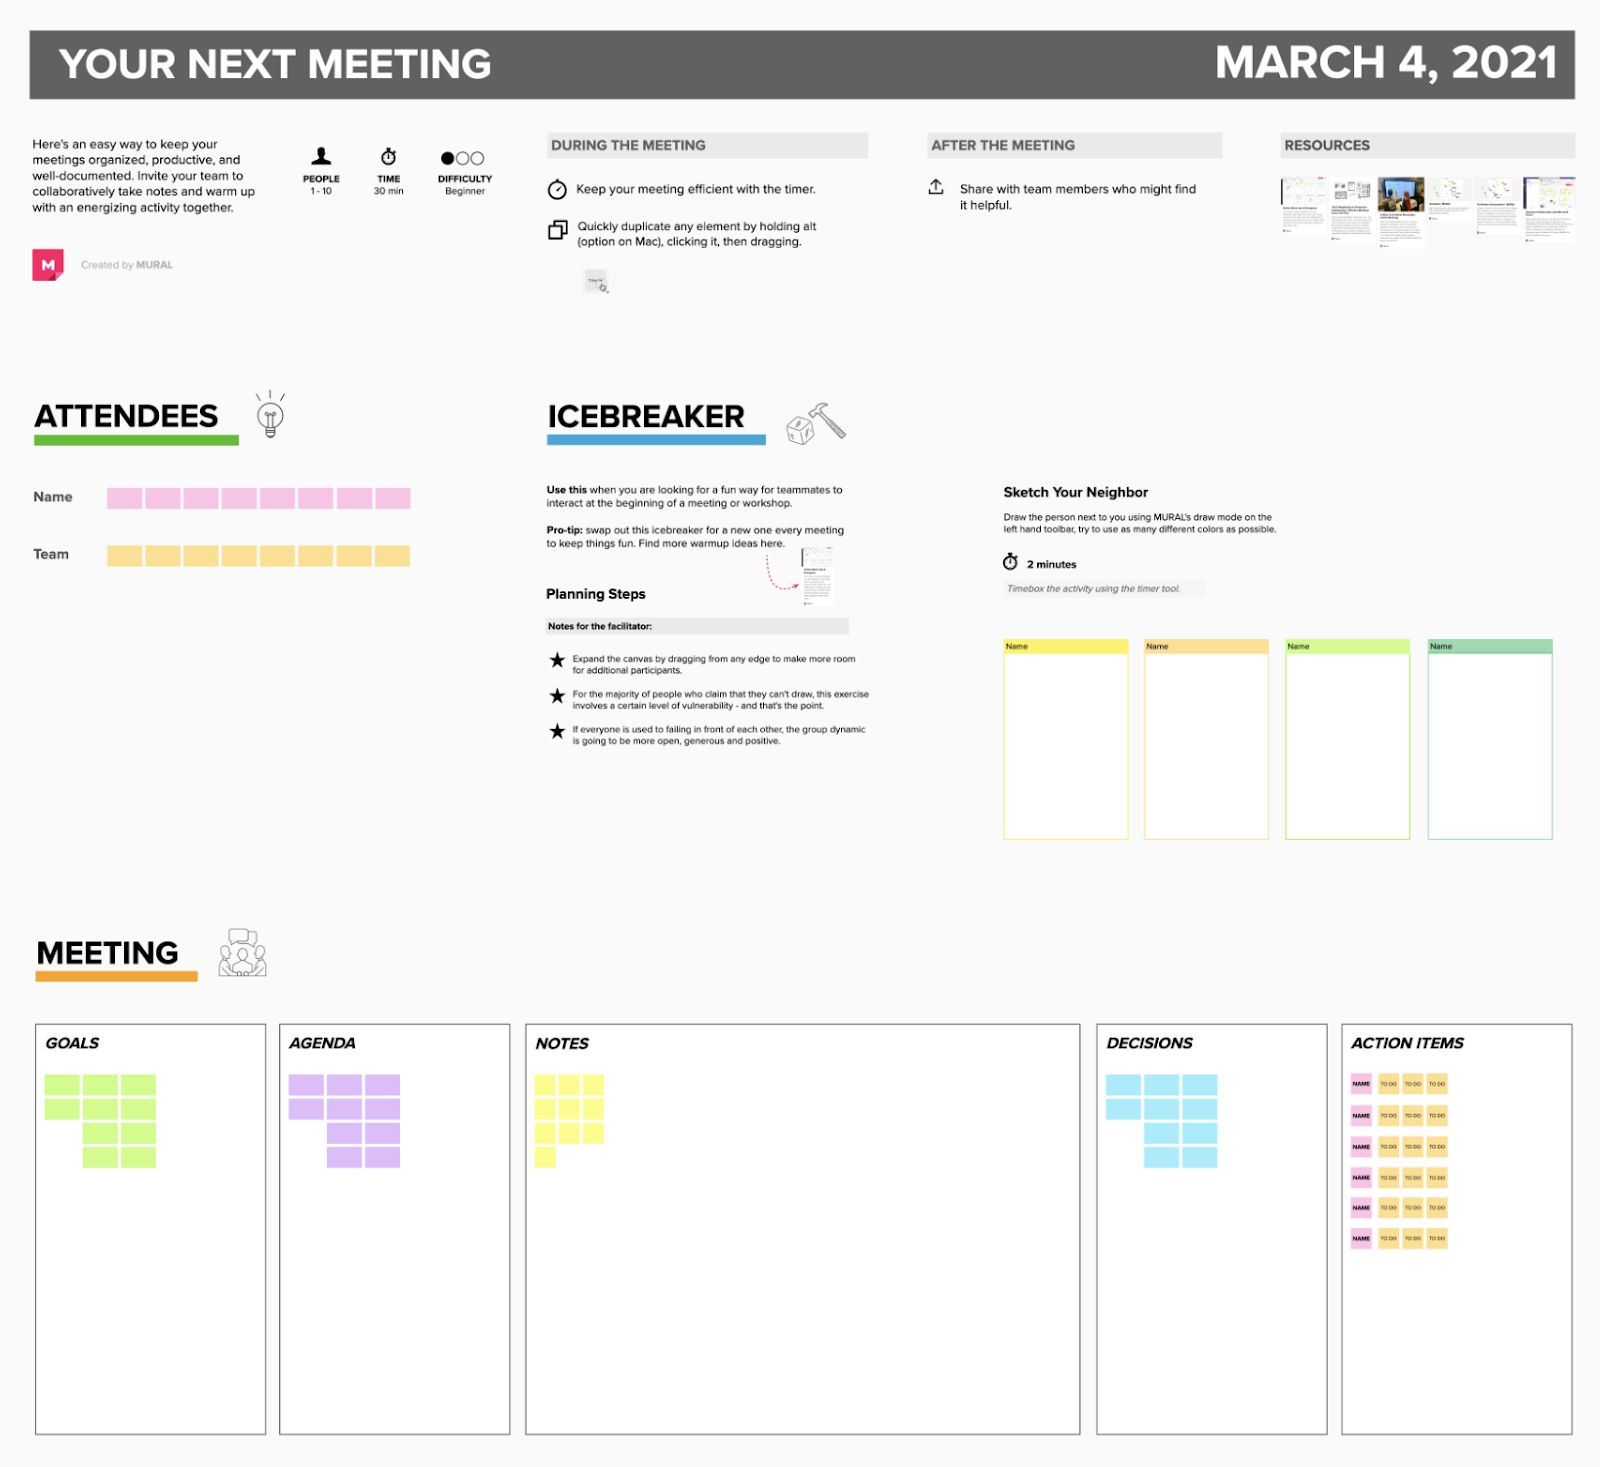 Your Next Meeting Template